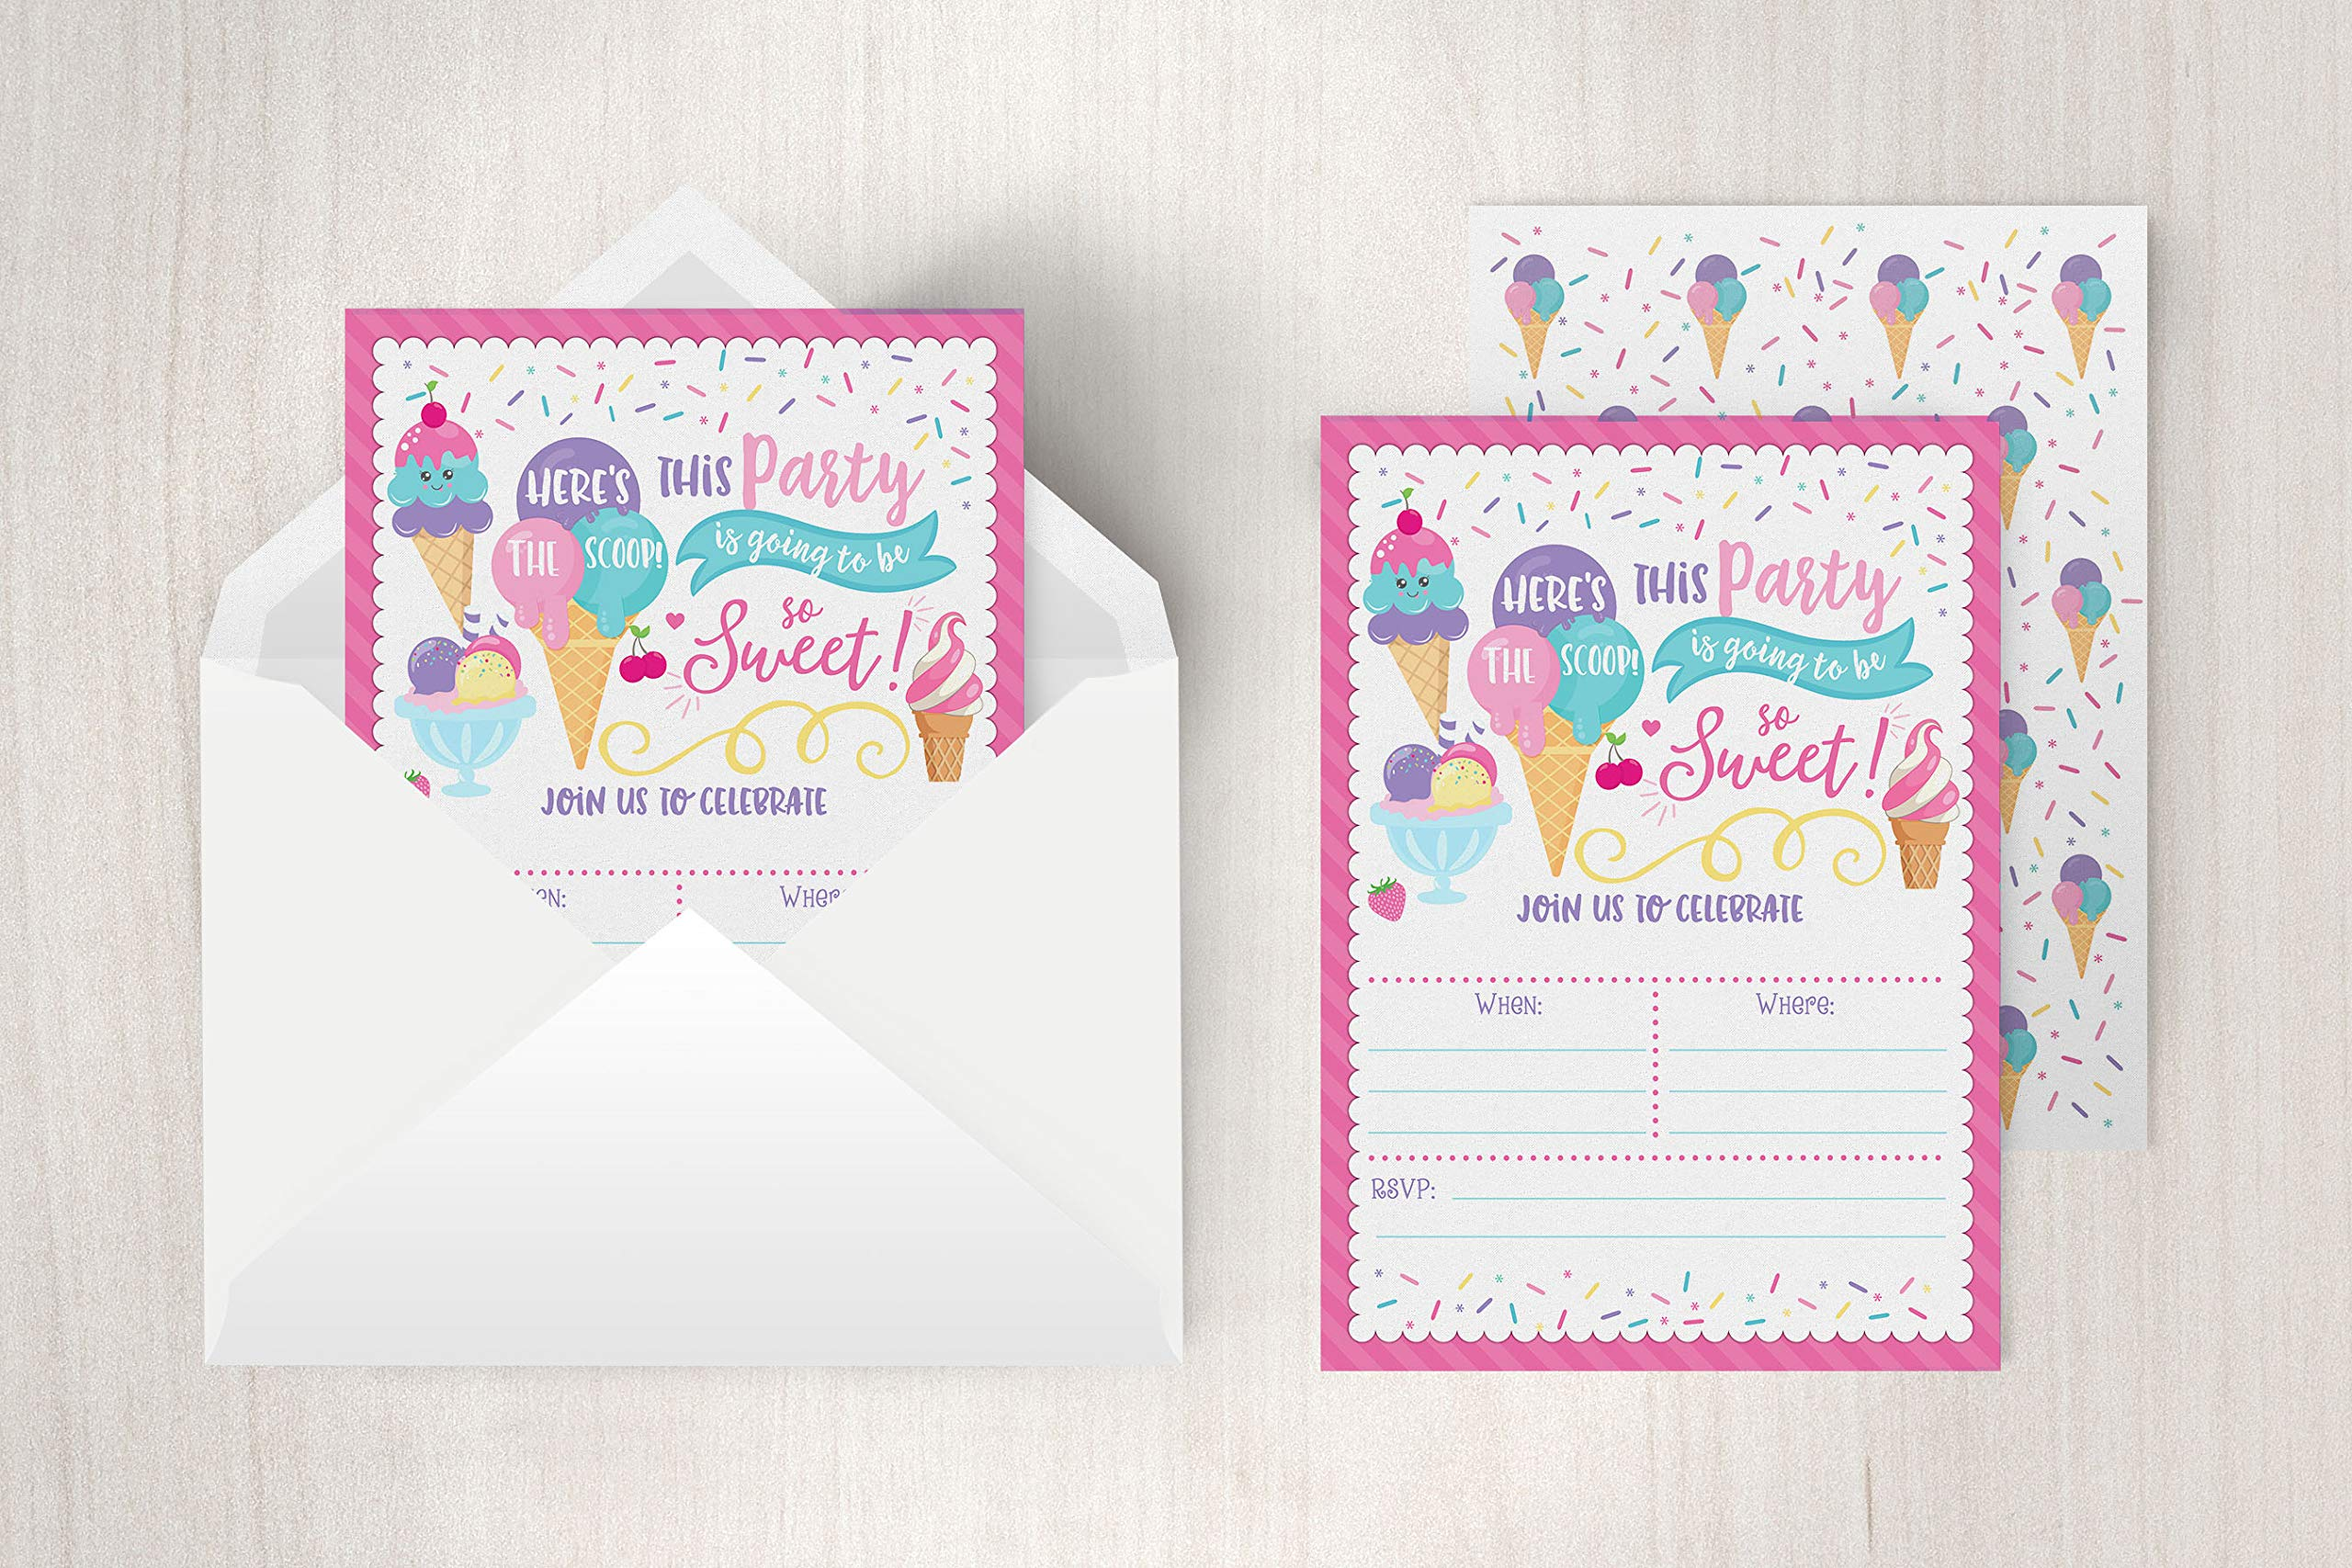 Ice Cream Birthday Party Invitations, Girl Birthday Invitations, Here's The Scoop, Ice Cream Social, 20 Fill in Invitations and Envelopes by Your Main Event Prints (Image #2)